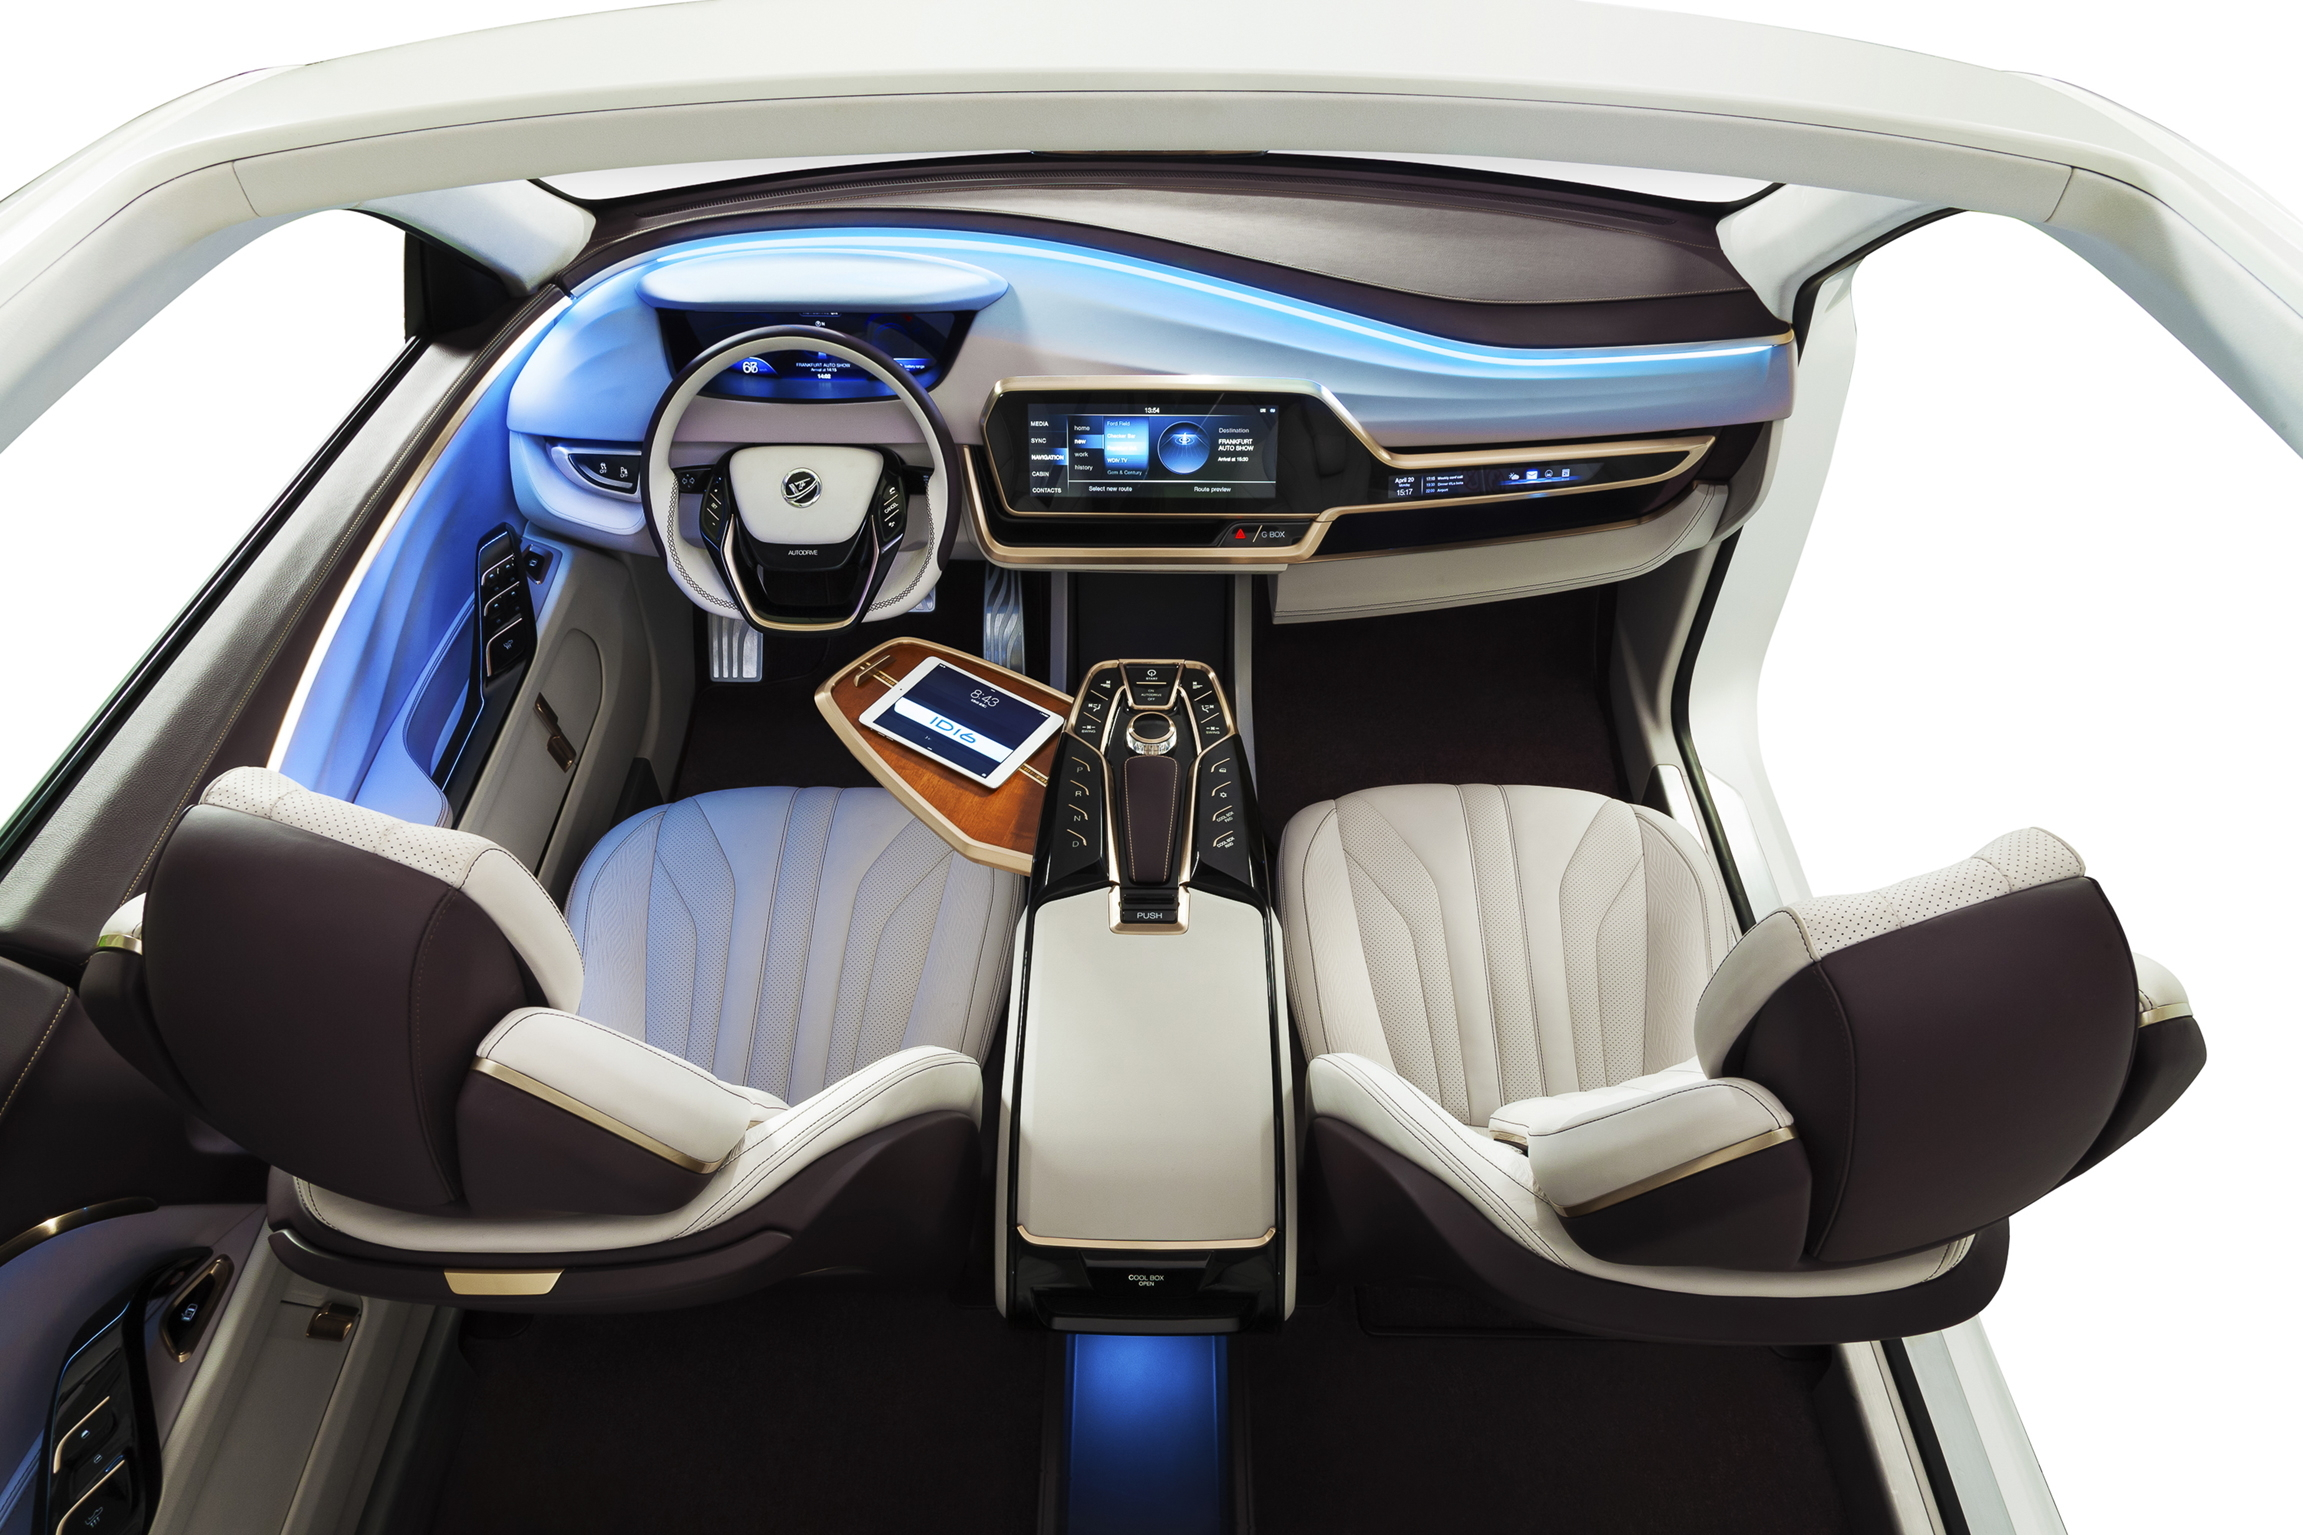 Yanfeng Automotive Interiors' ID16 Concept Makes Its Global Debut At The IAA / What